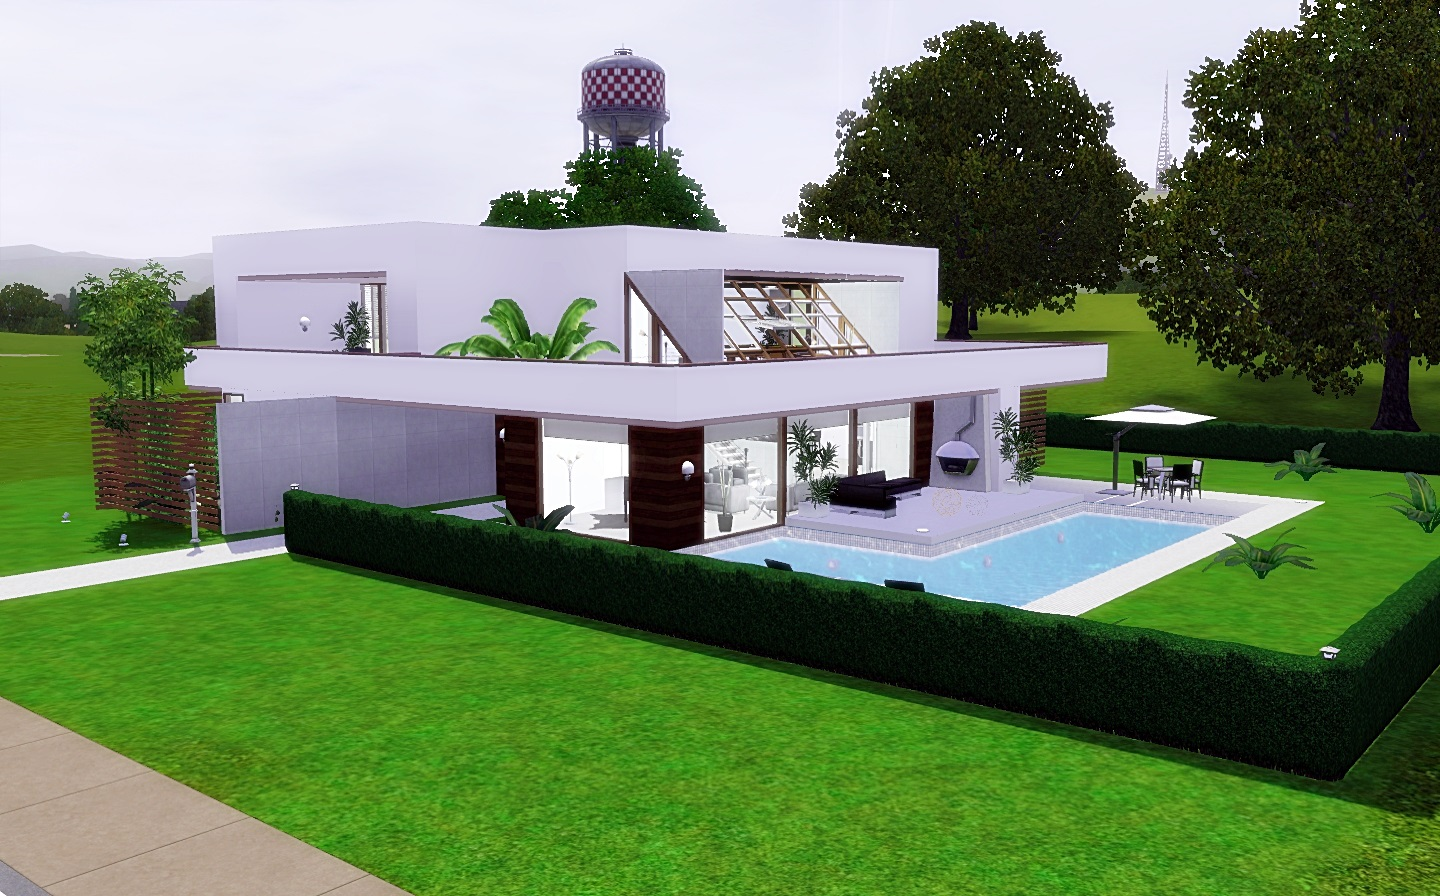 ^ he sims 3 simple modern house zionstar.net.com - Find the best ...